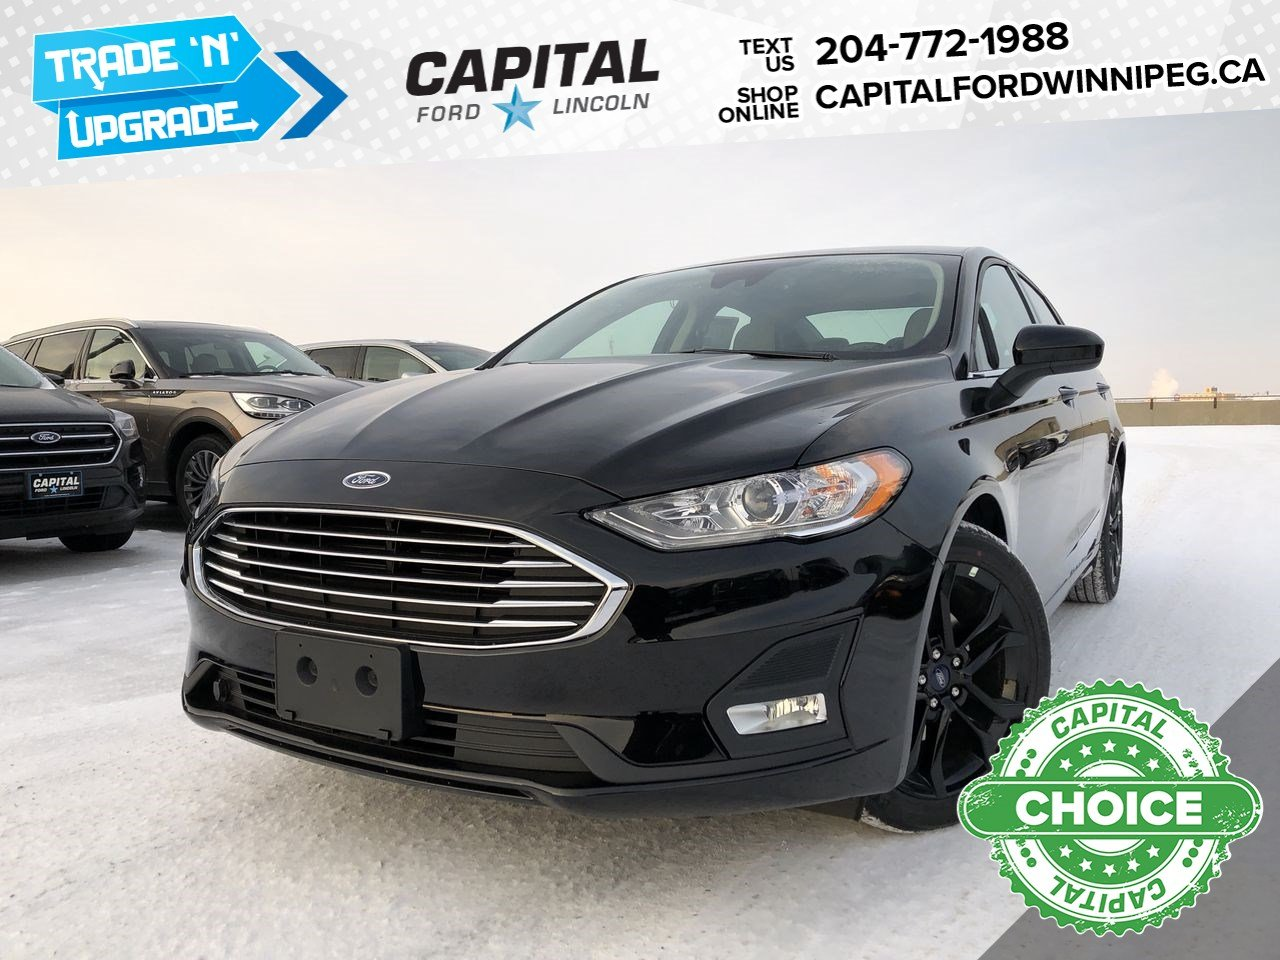 New 2020 Ford Fusion SE*Heated Seats*Reverse Camera*Adaptive Cruise*Navigation